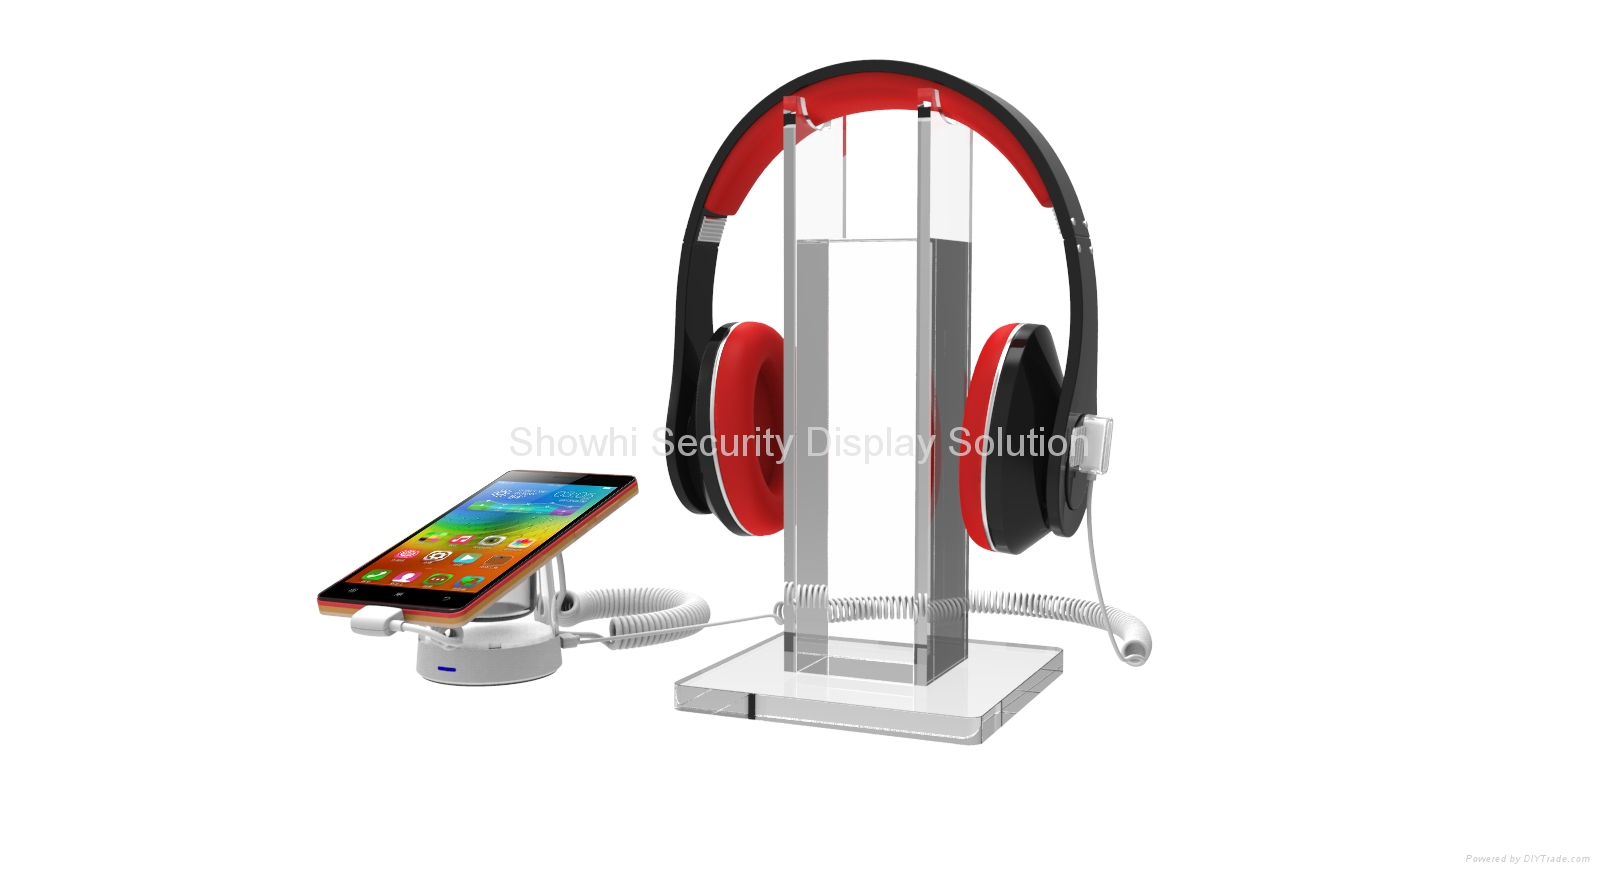 Showhi security display stand for cell phone and accesory charge alarm function  3